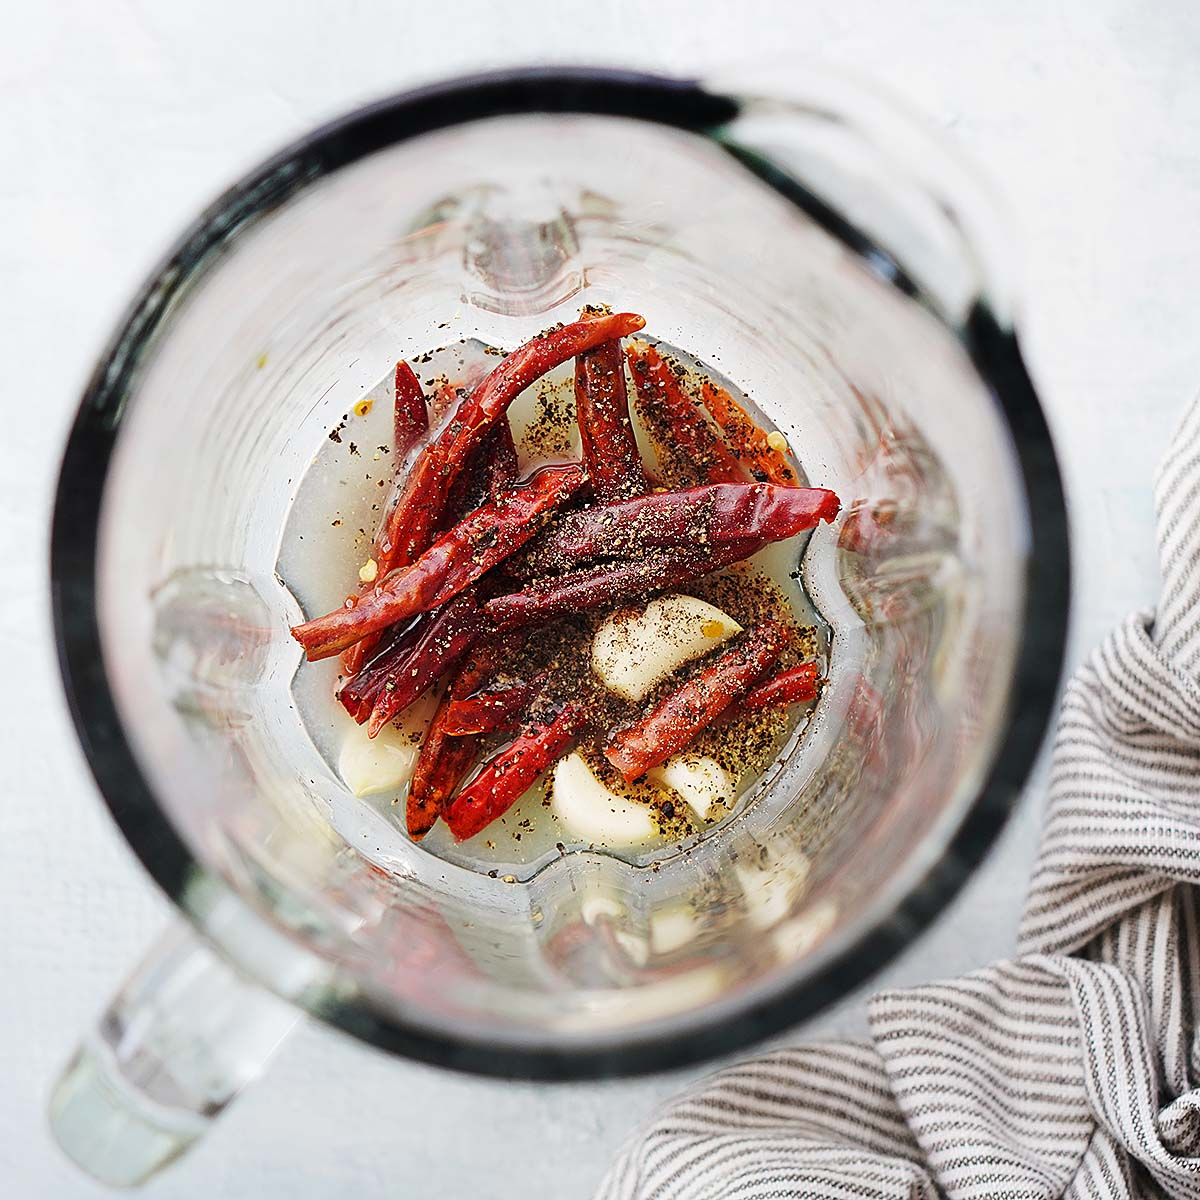 Chile de arbol peppers, garlic and lime juice inside the glass of a blender.